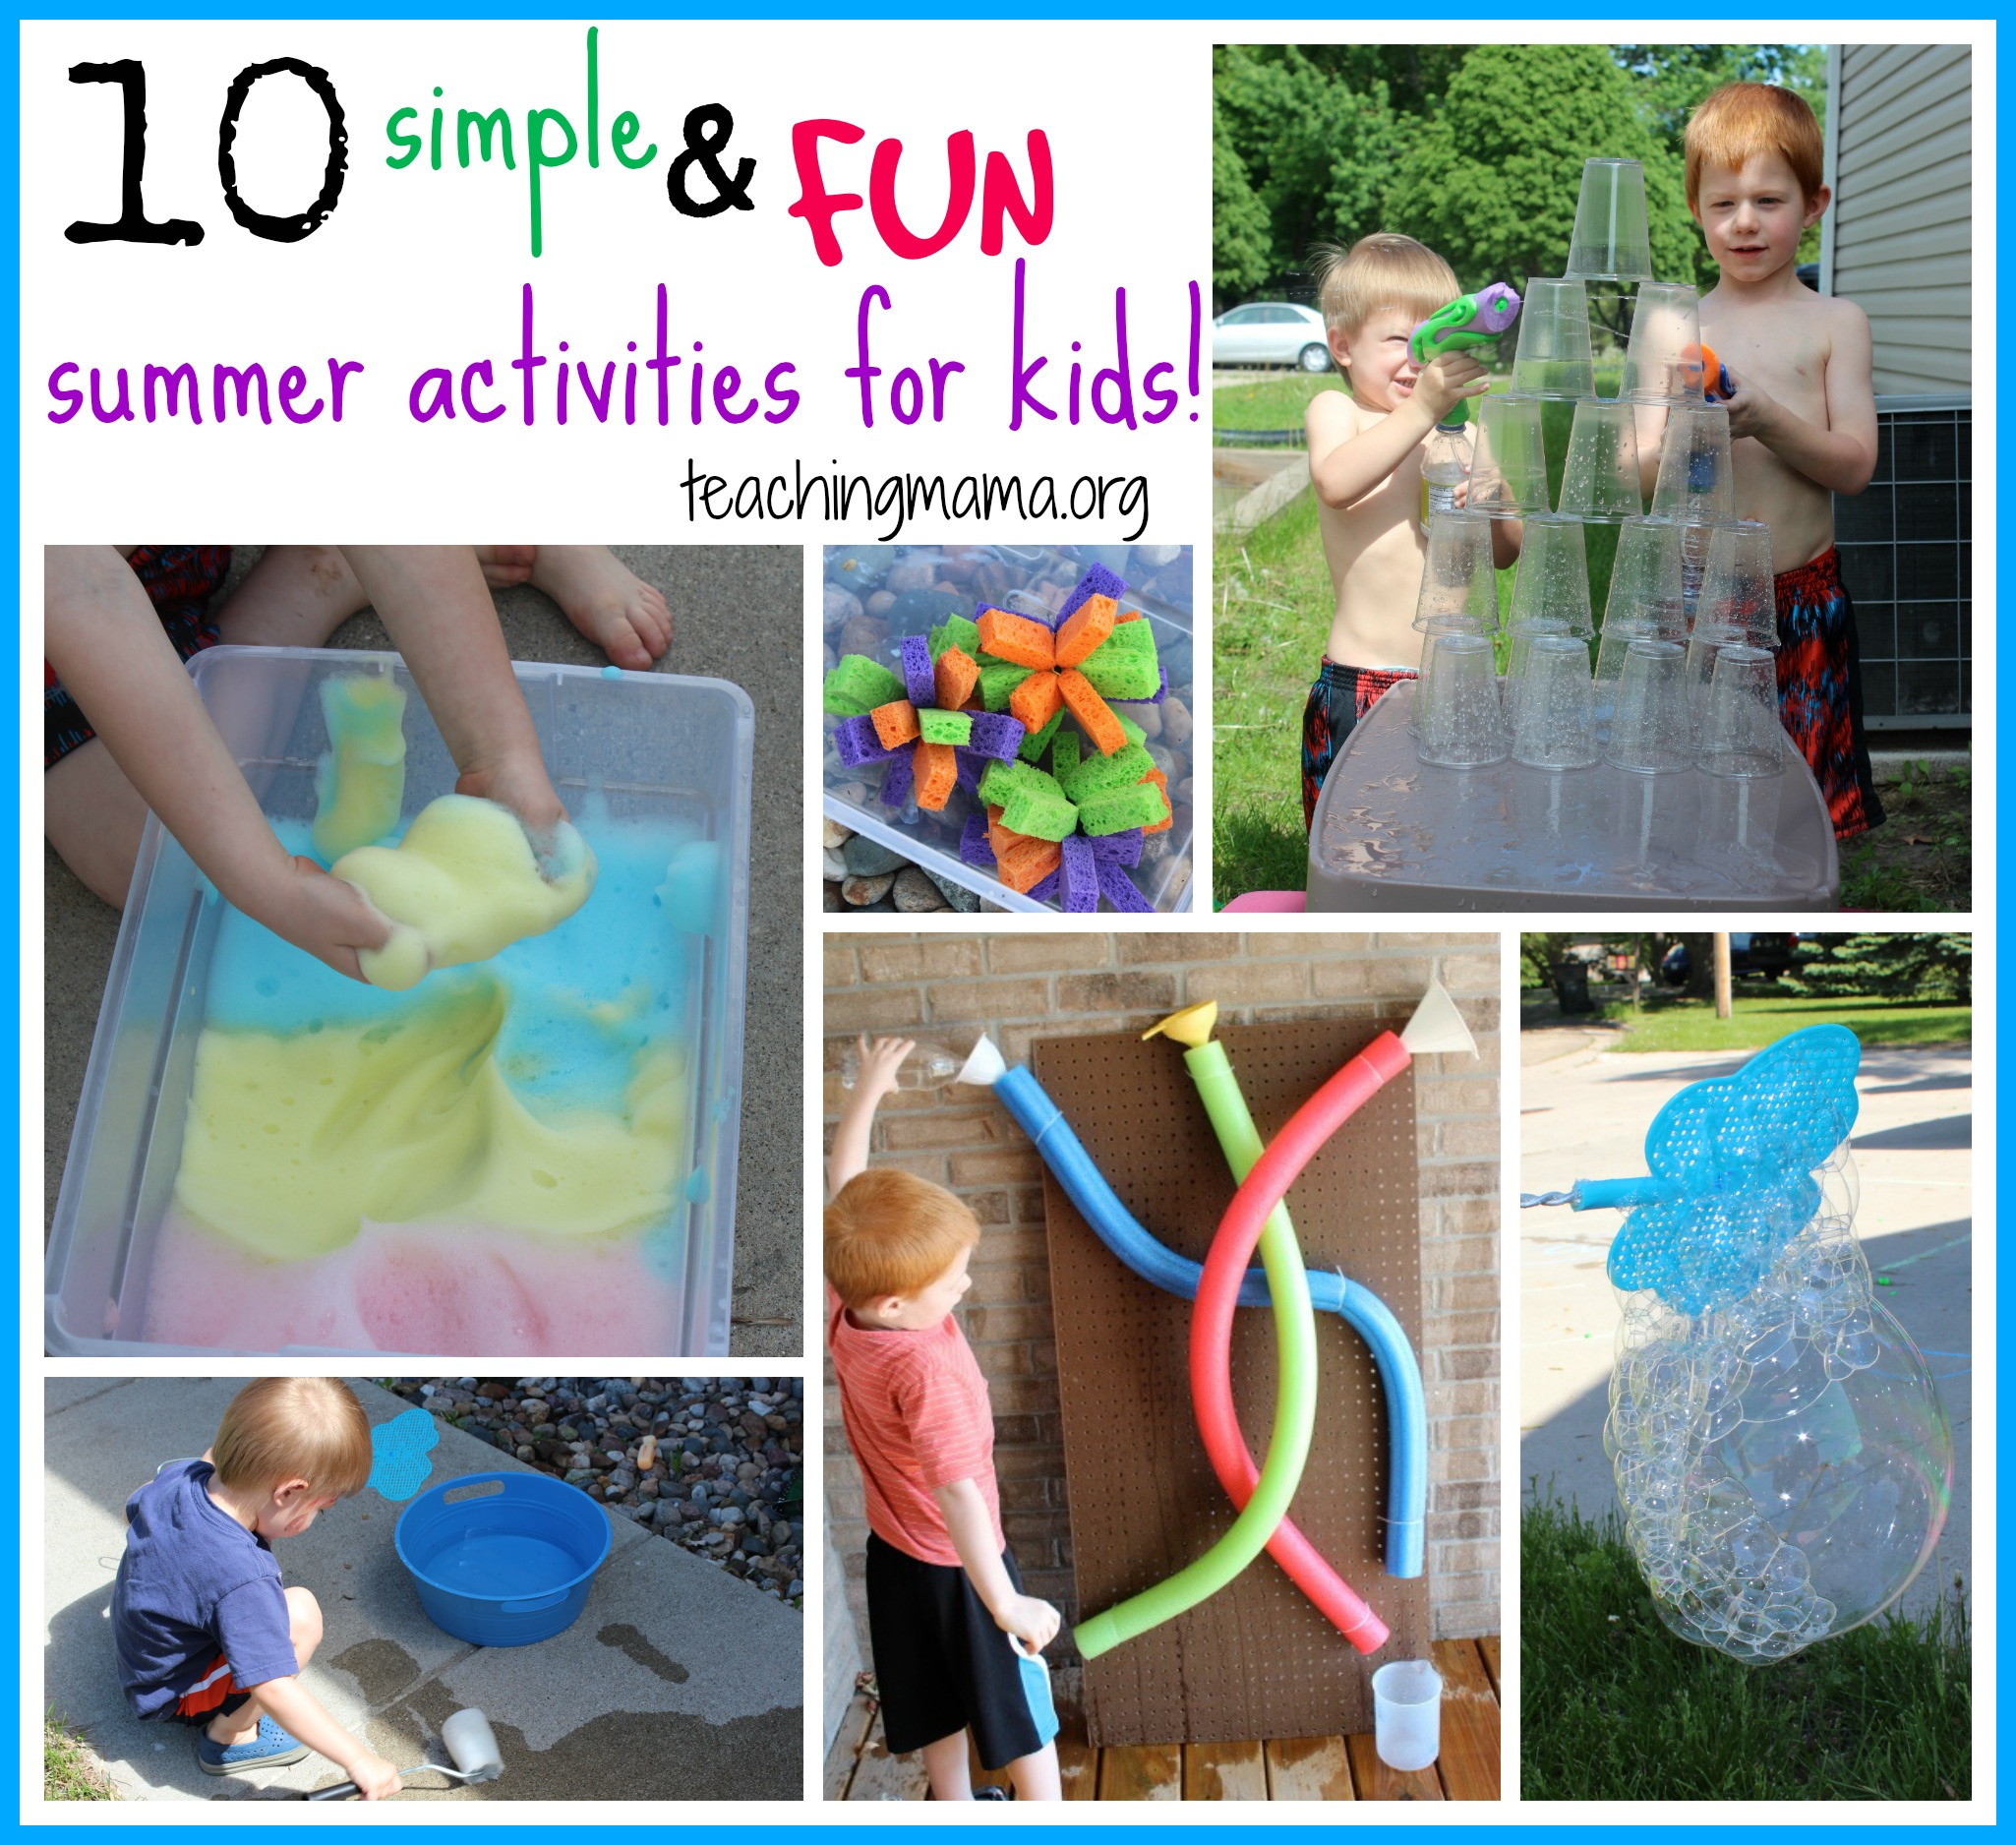 Best ideas about Fun Ideas For Kids . Save or Pin 10 Simple and Fun Summer Activities for Kids Now.